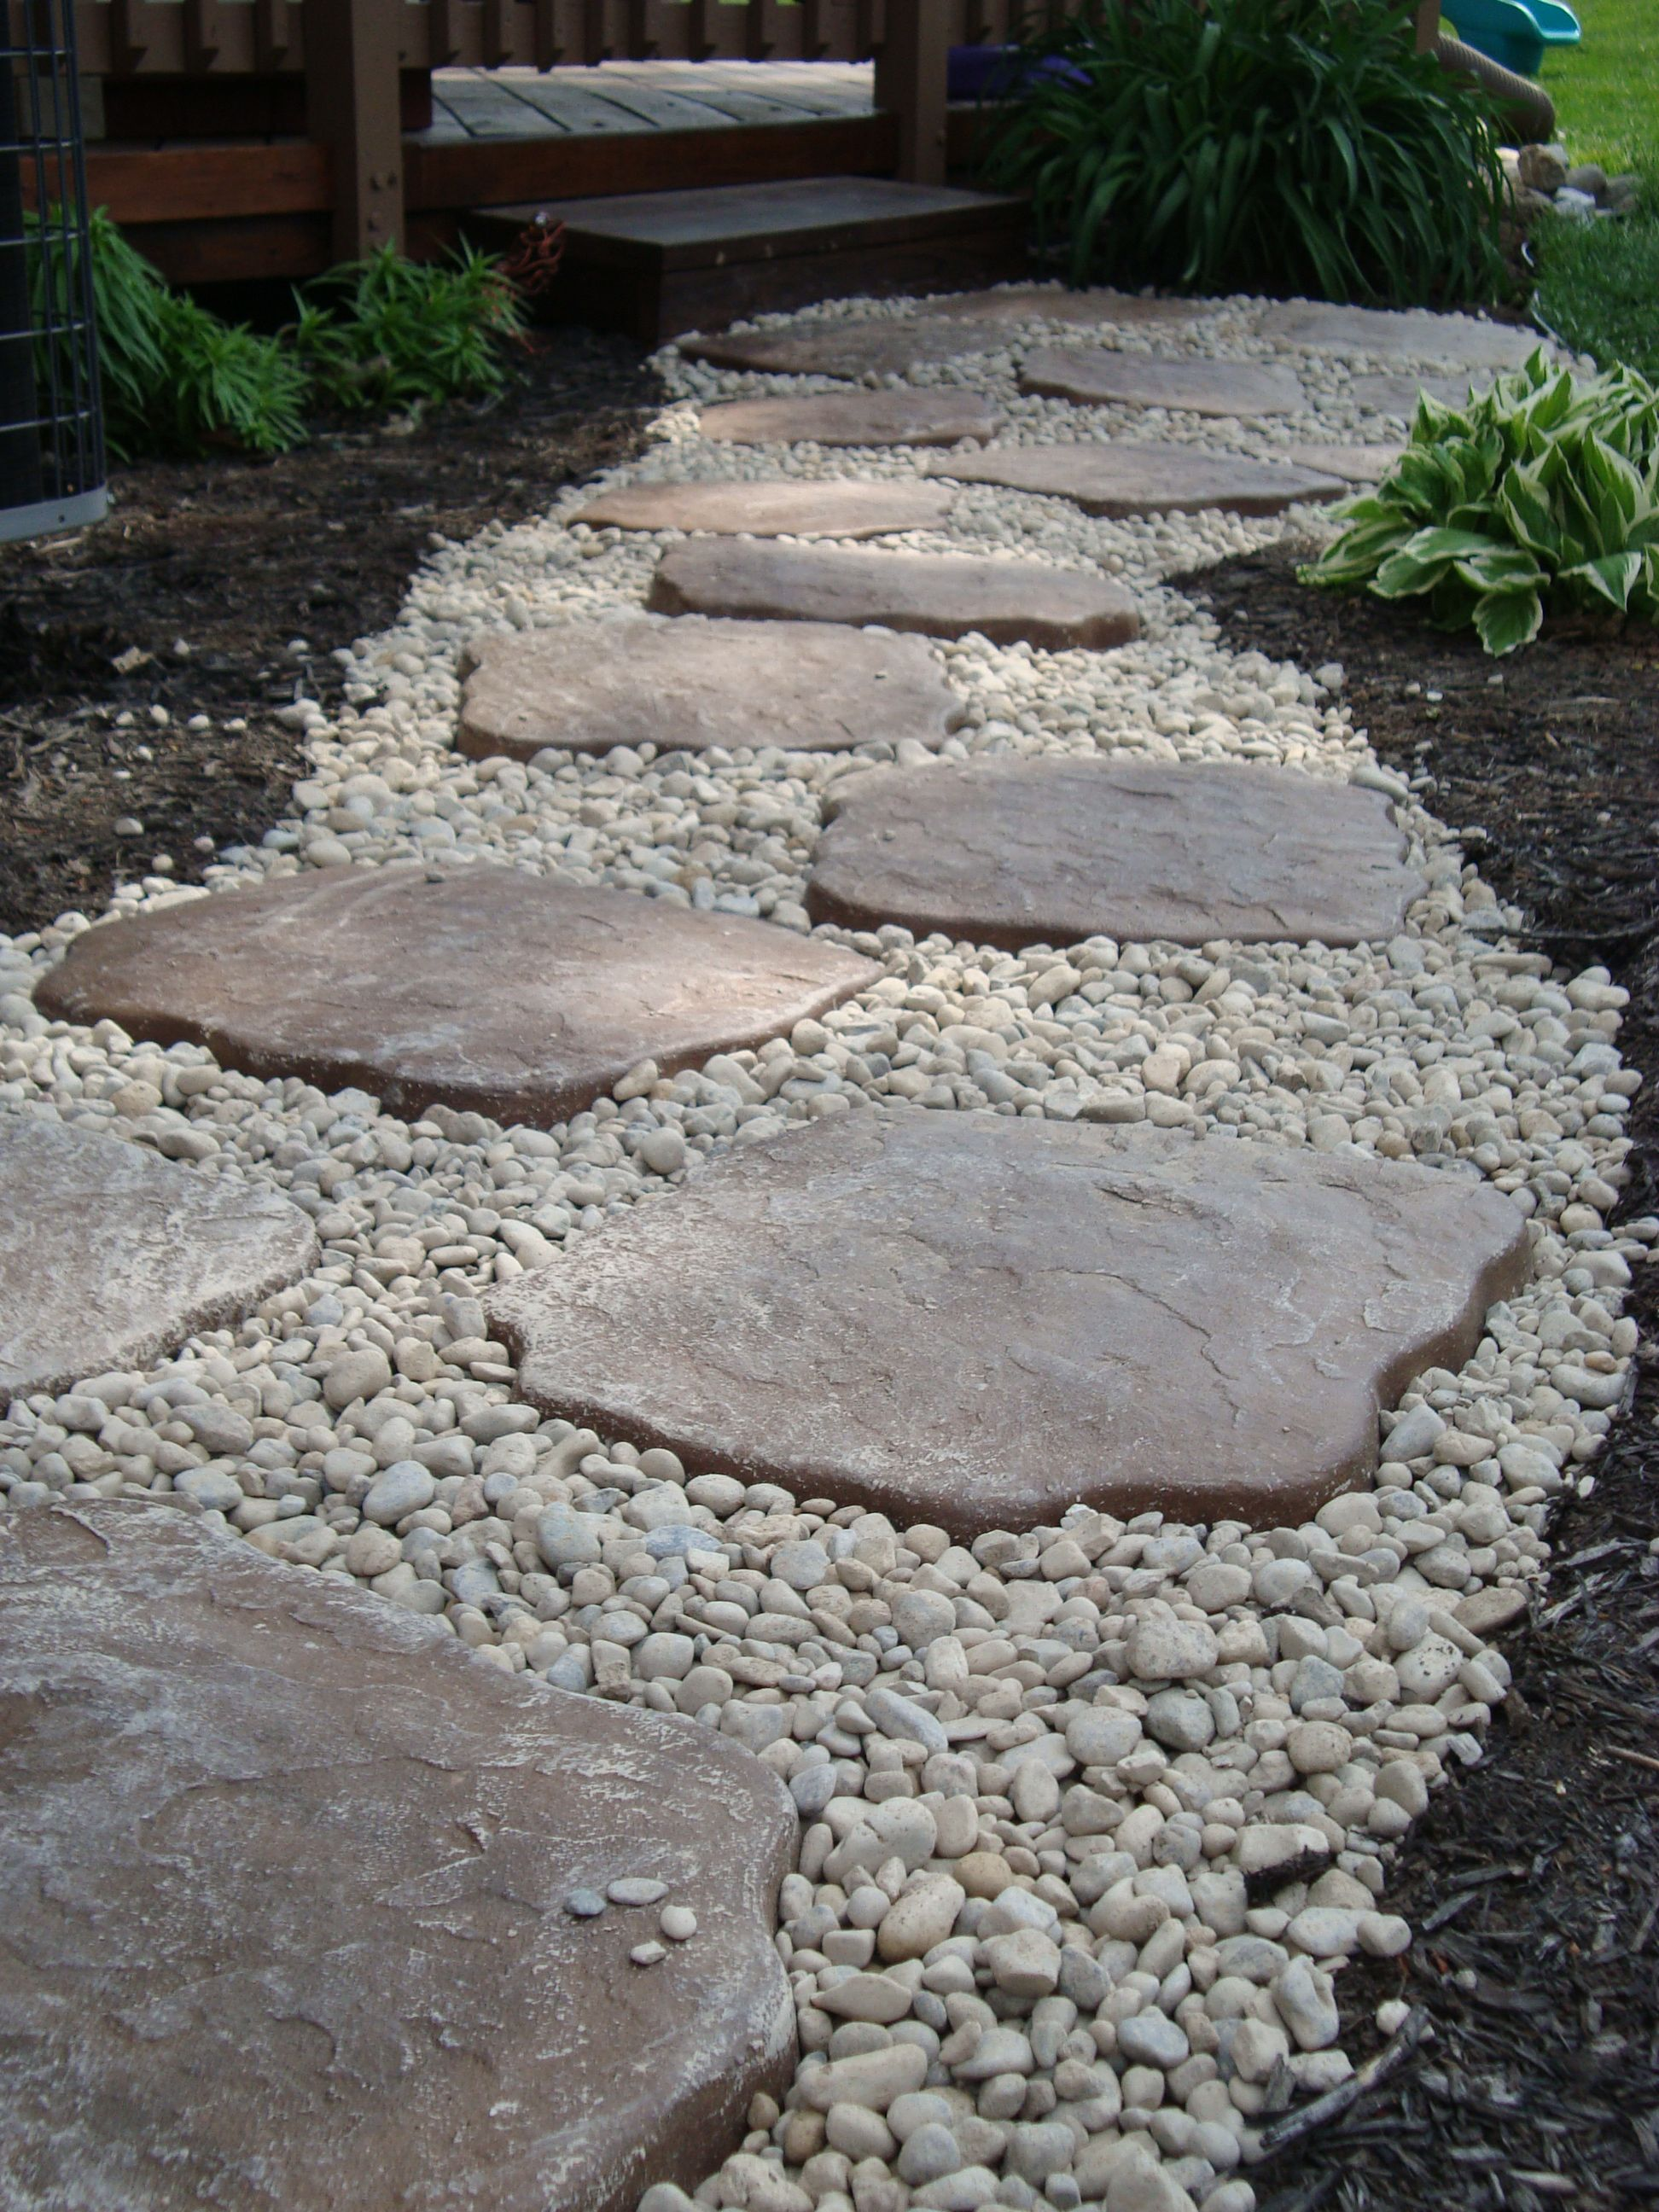 Landscaping i did diy use edging to contain small river for Natural rock landscaping